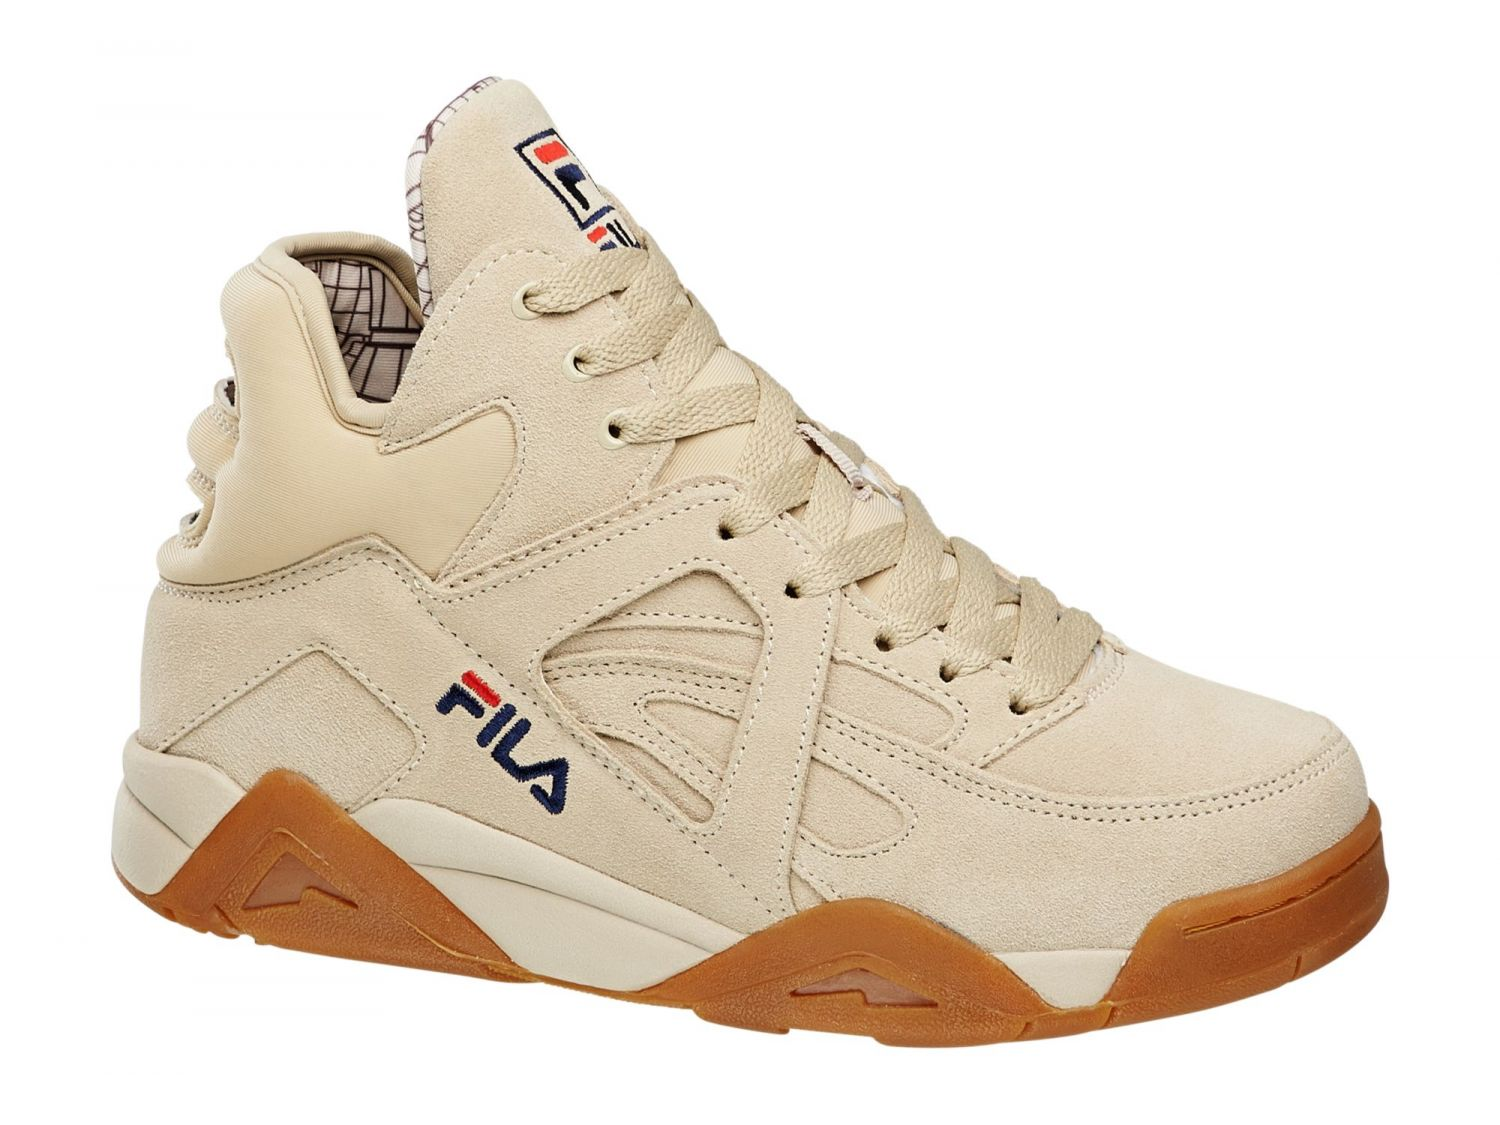 fila sneaker cage s mid 00014201479842 off white fila germany. Black Bedroom Furniture Sets. Home Design Ideas